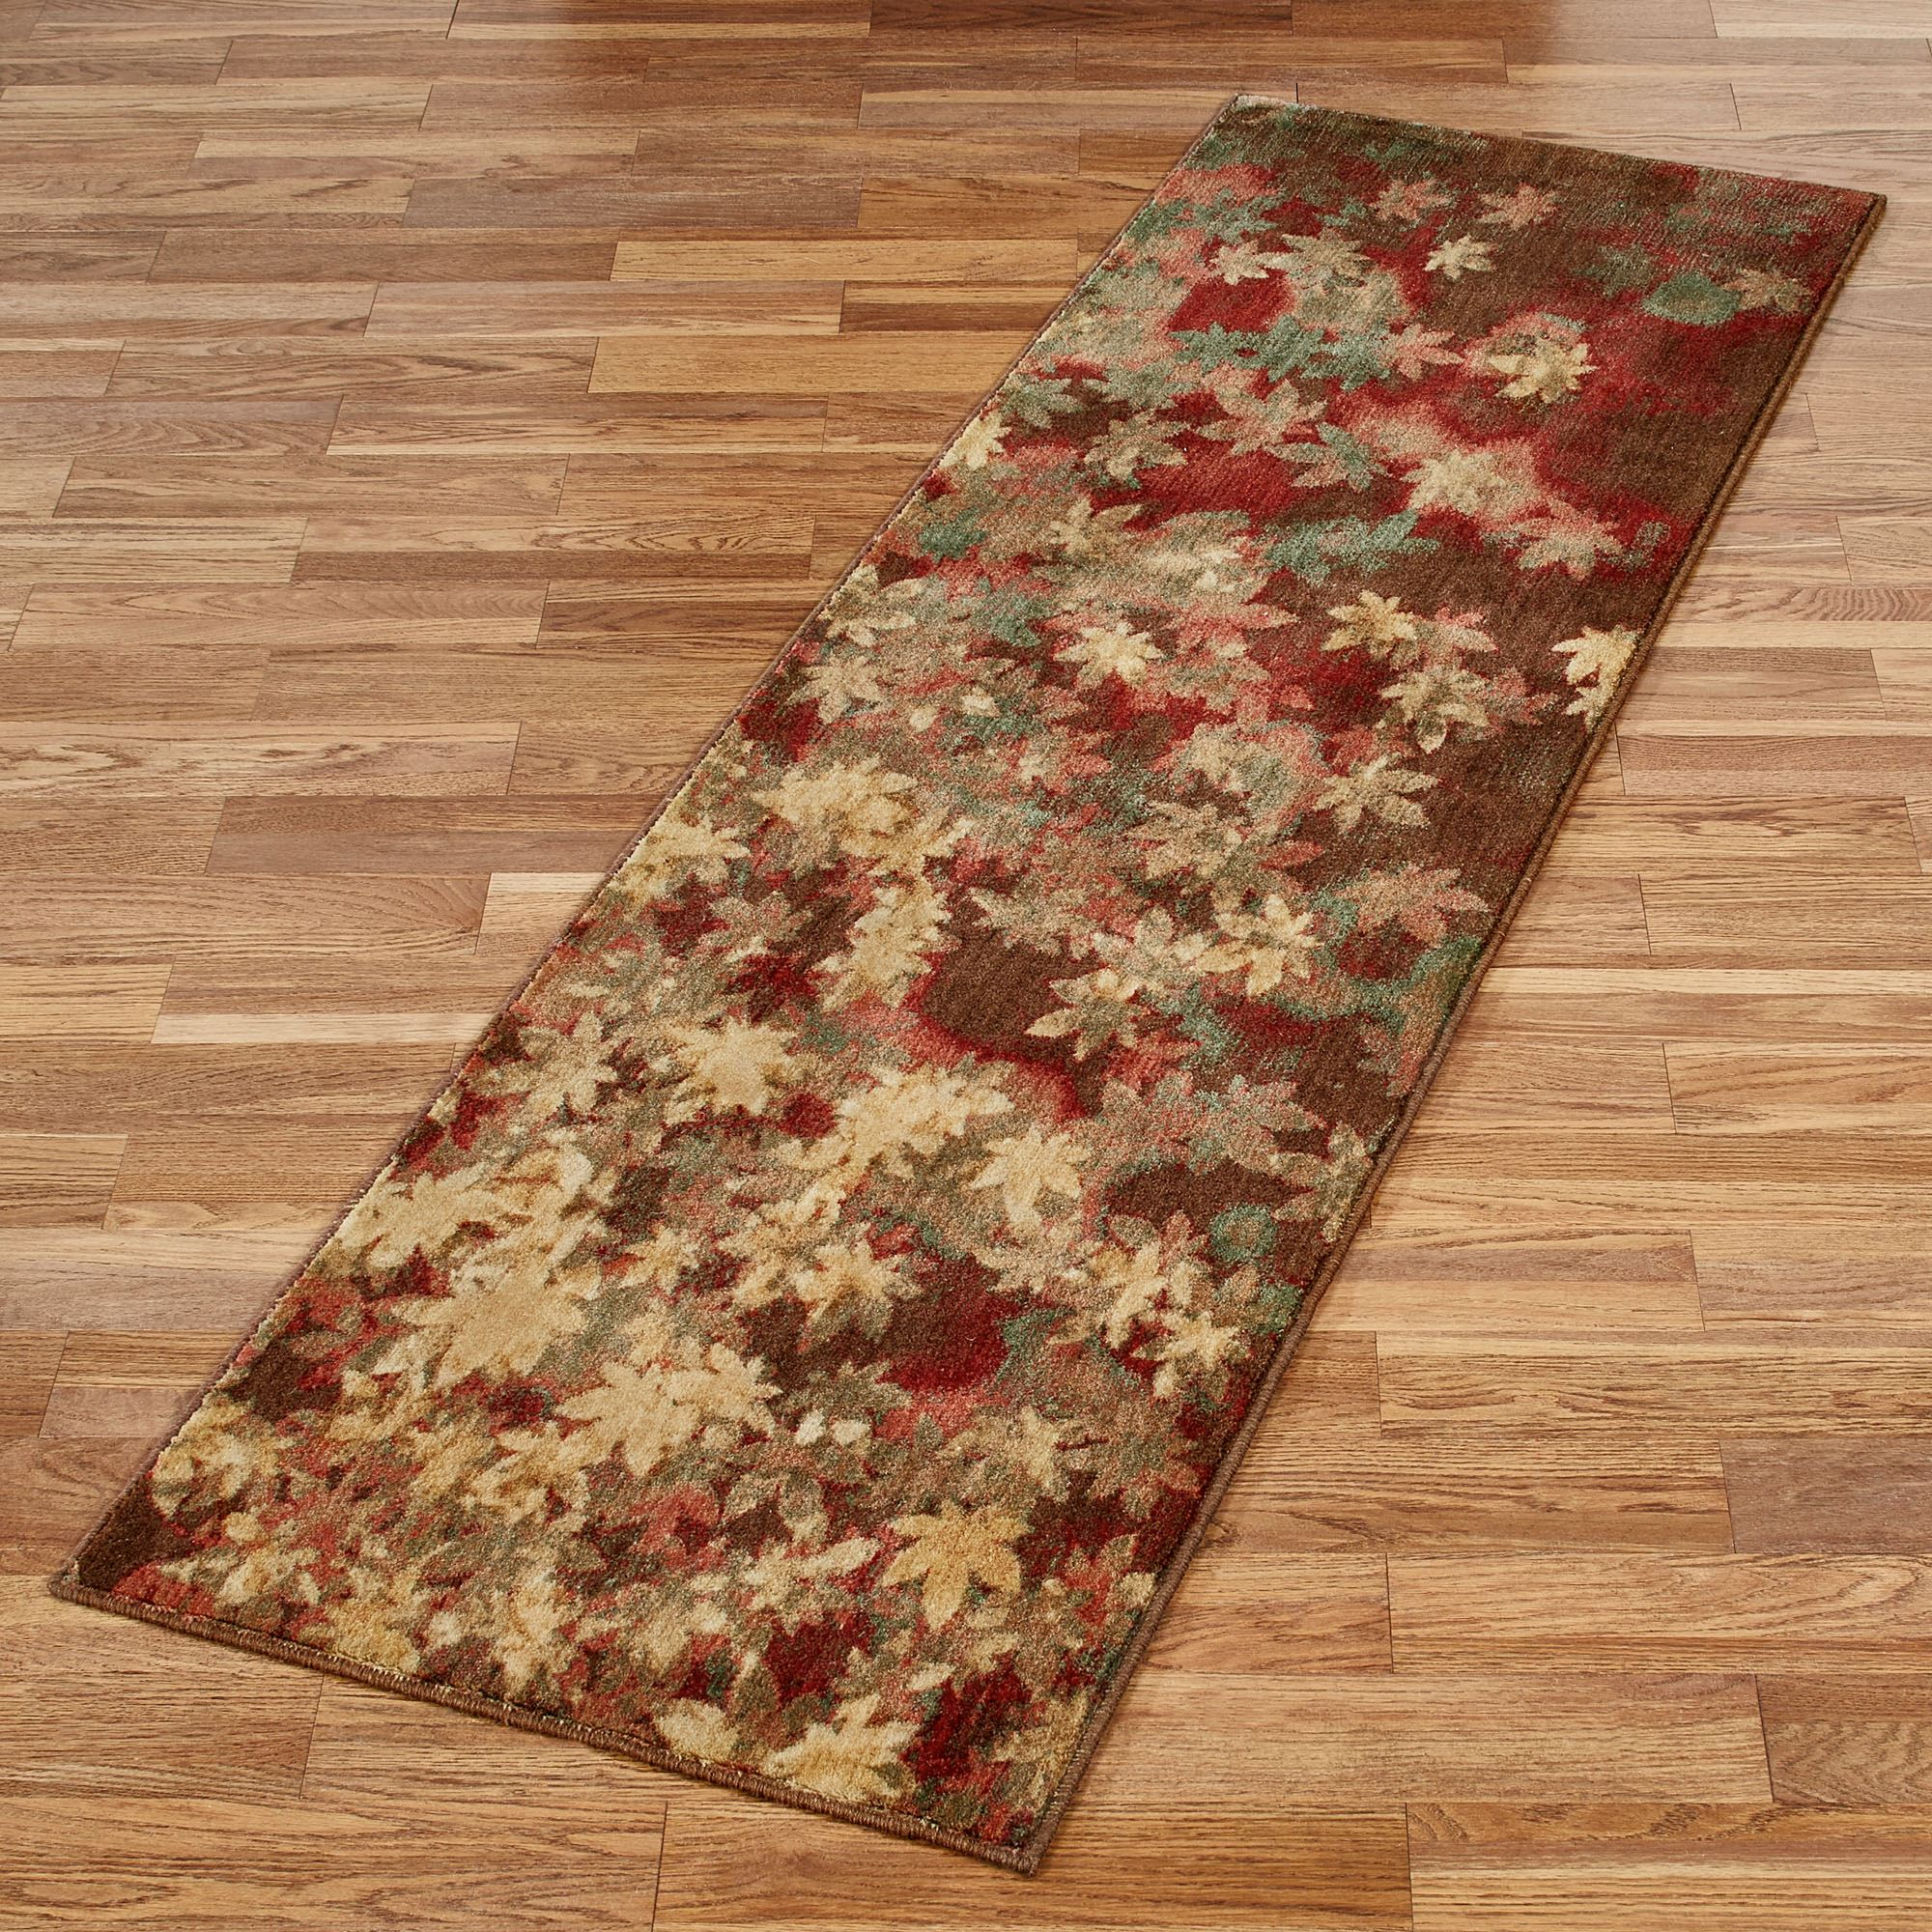 Unique Riverpark Autumn Leaf Area Rugs OX16